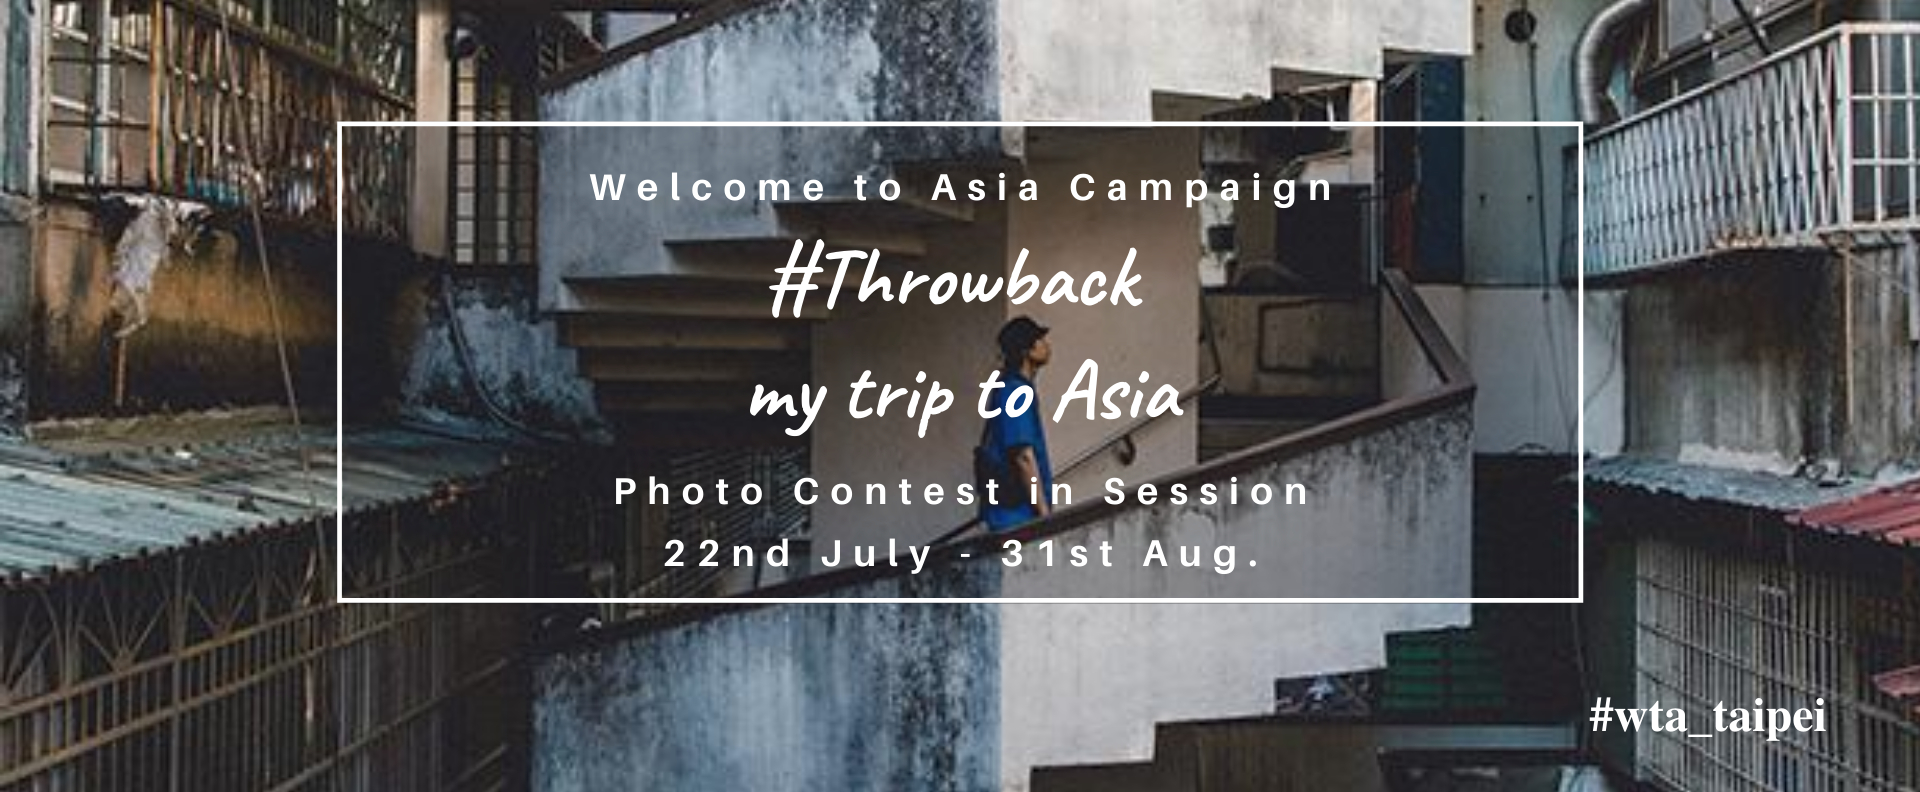 「Throwback to My Trip to Asia 」 Photo contest request